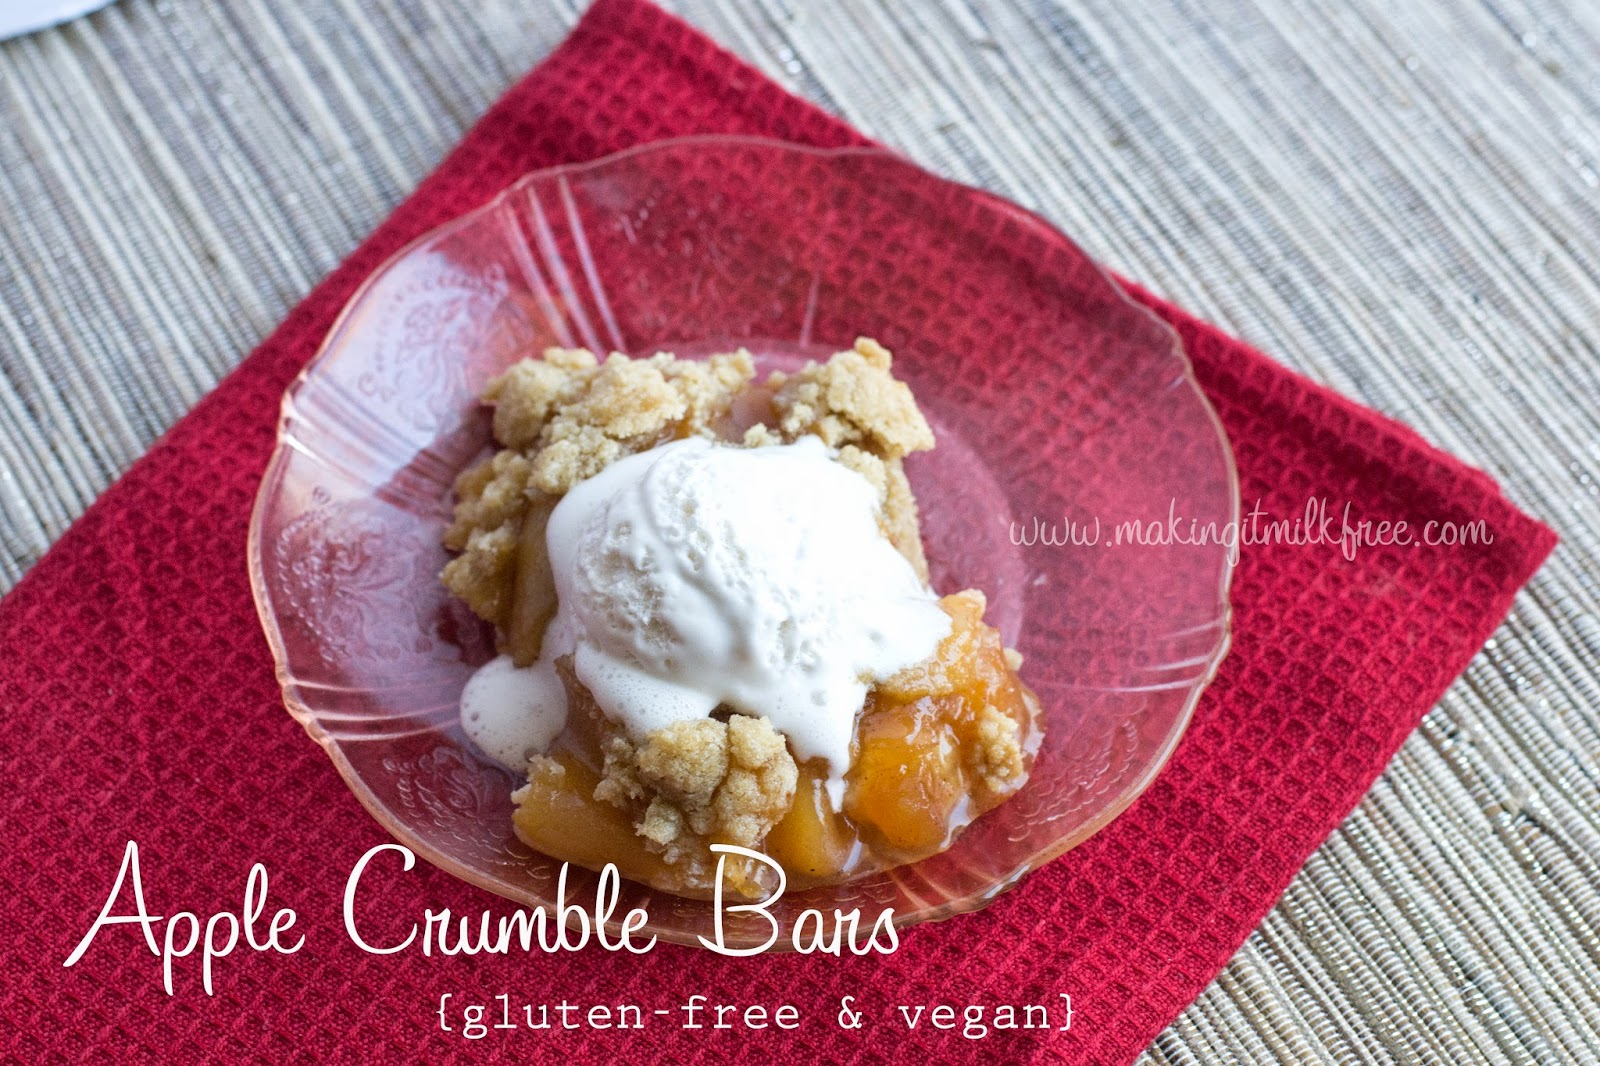 #glutenfree #vegan #applecrumble #dessert